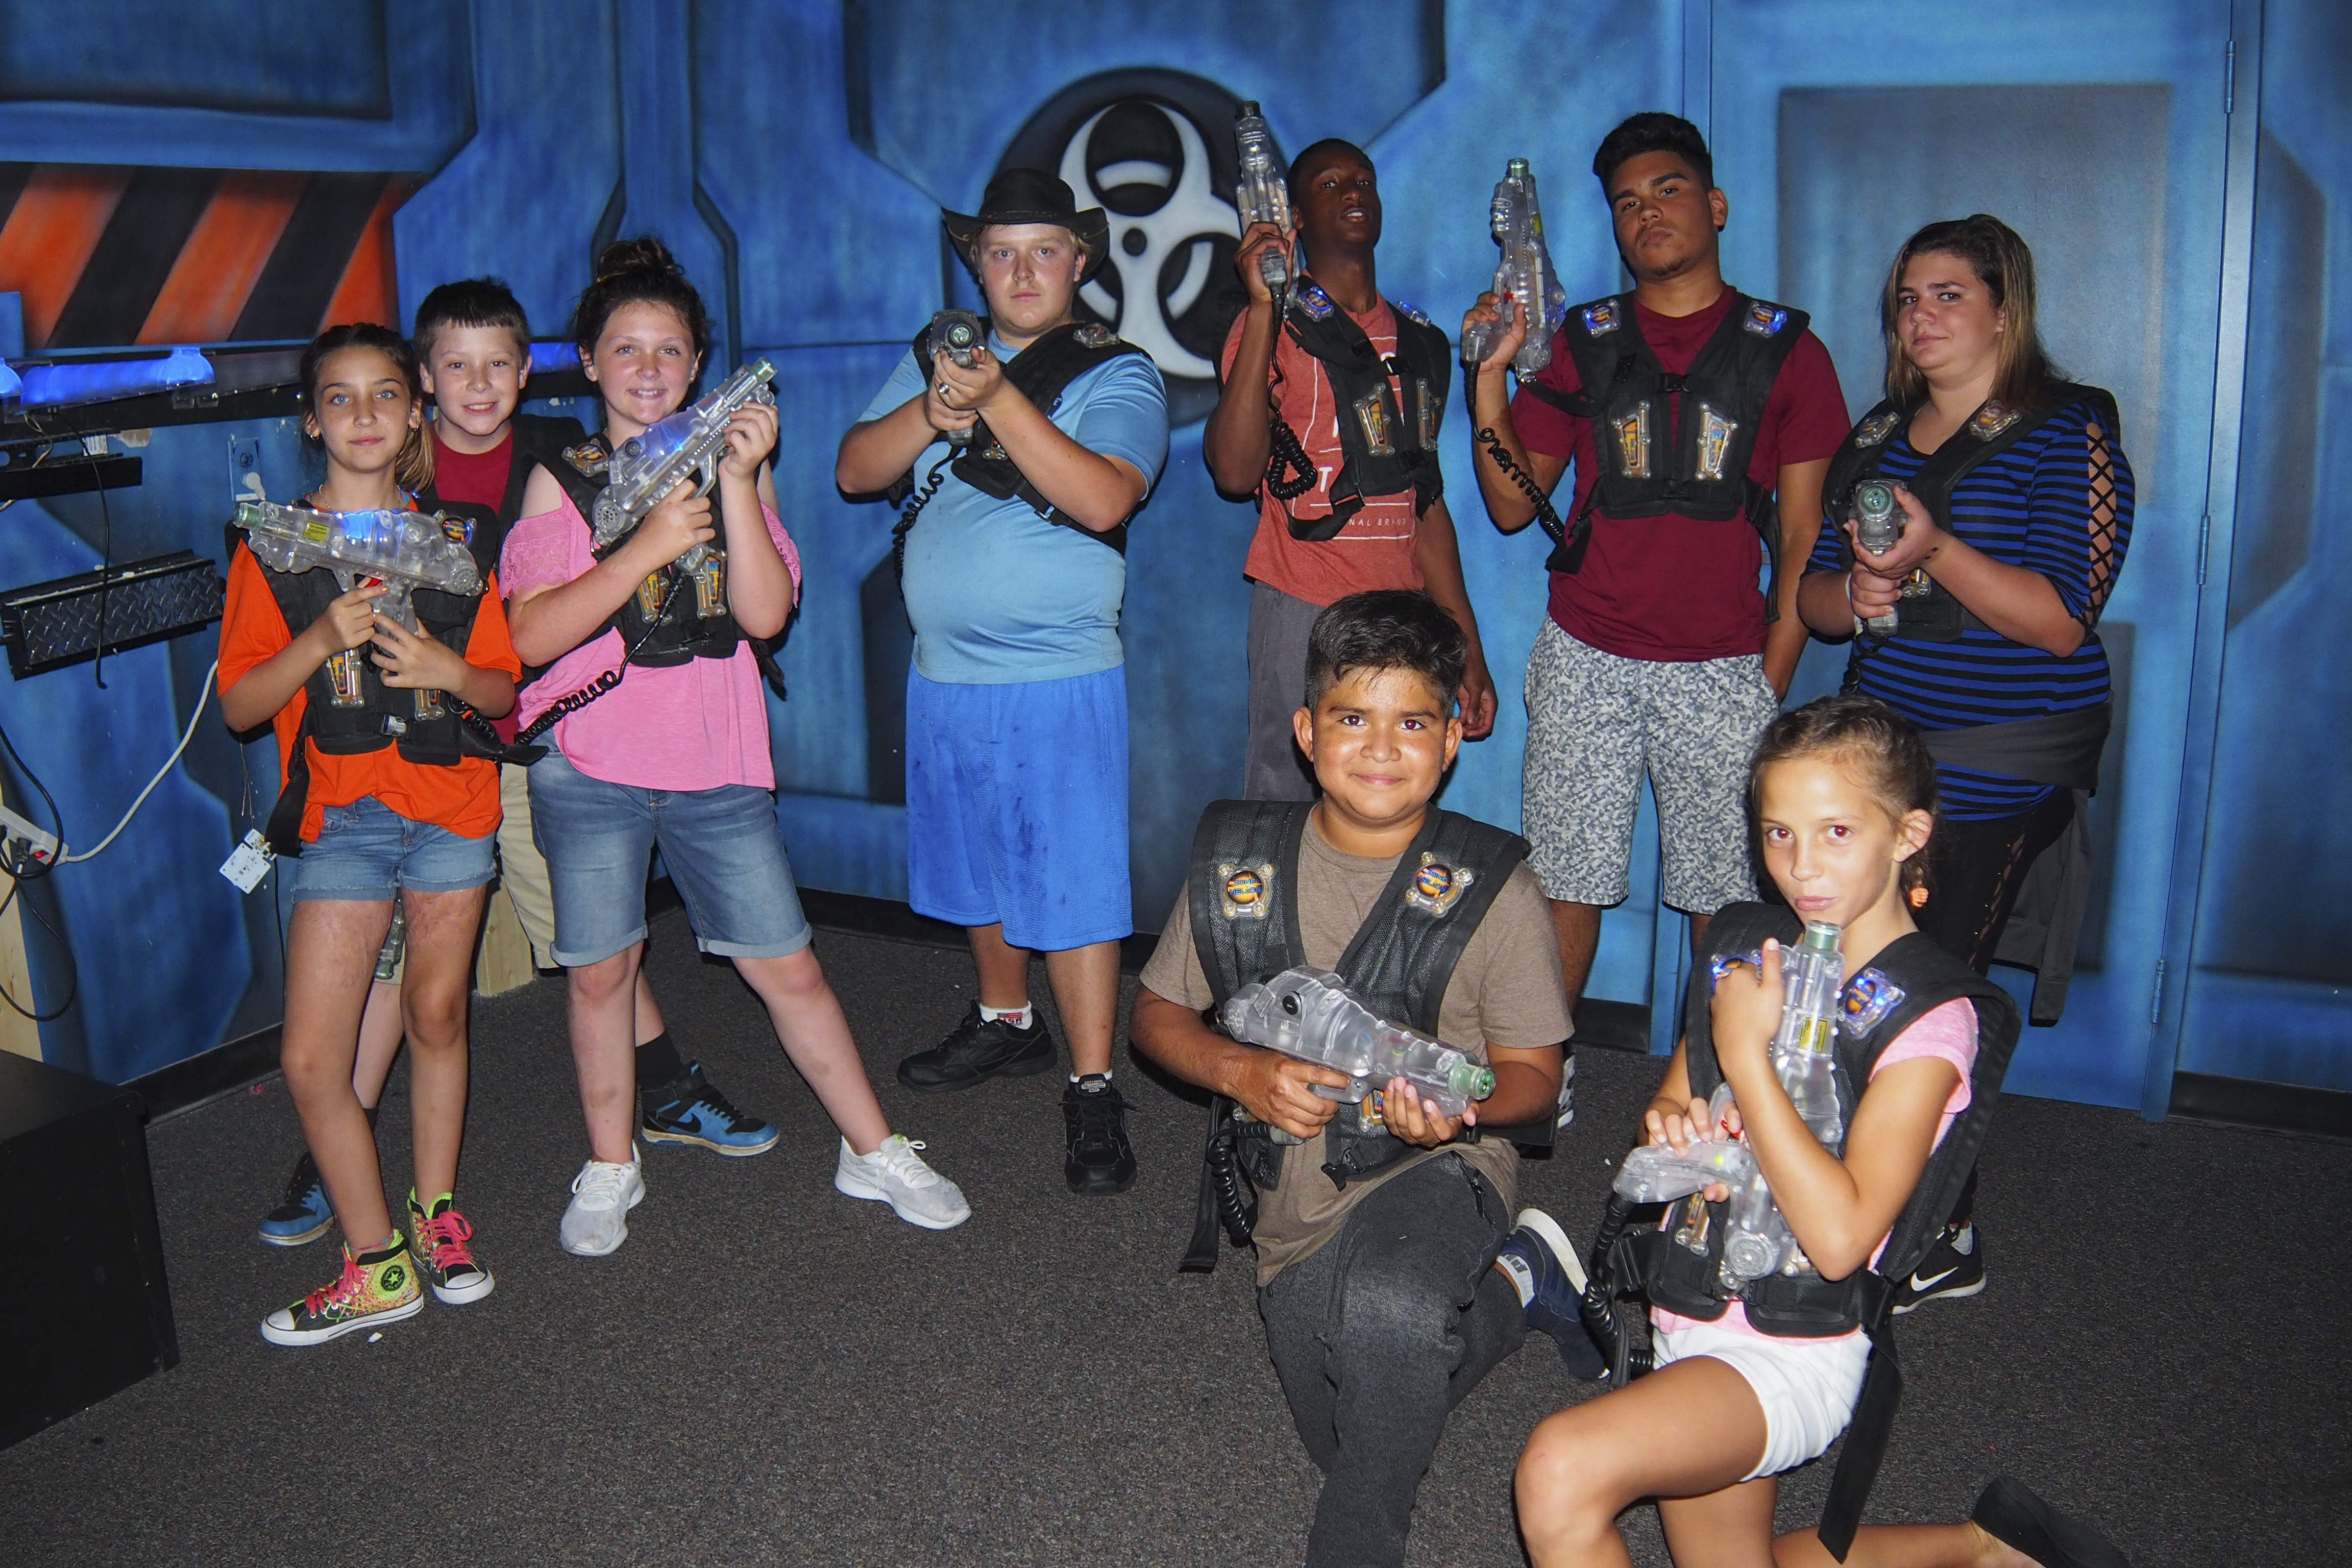 Group of kids playing laser tag